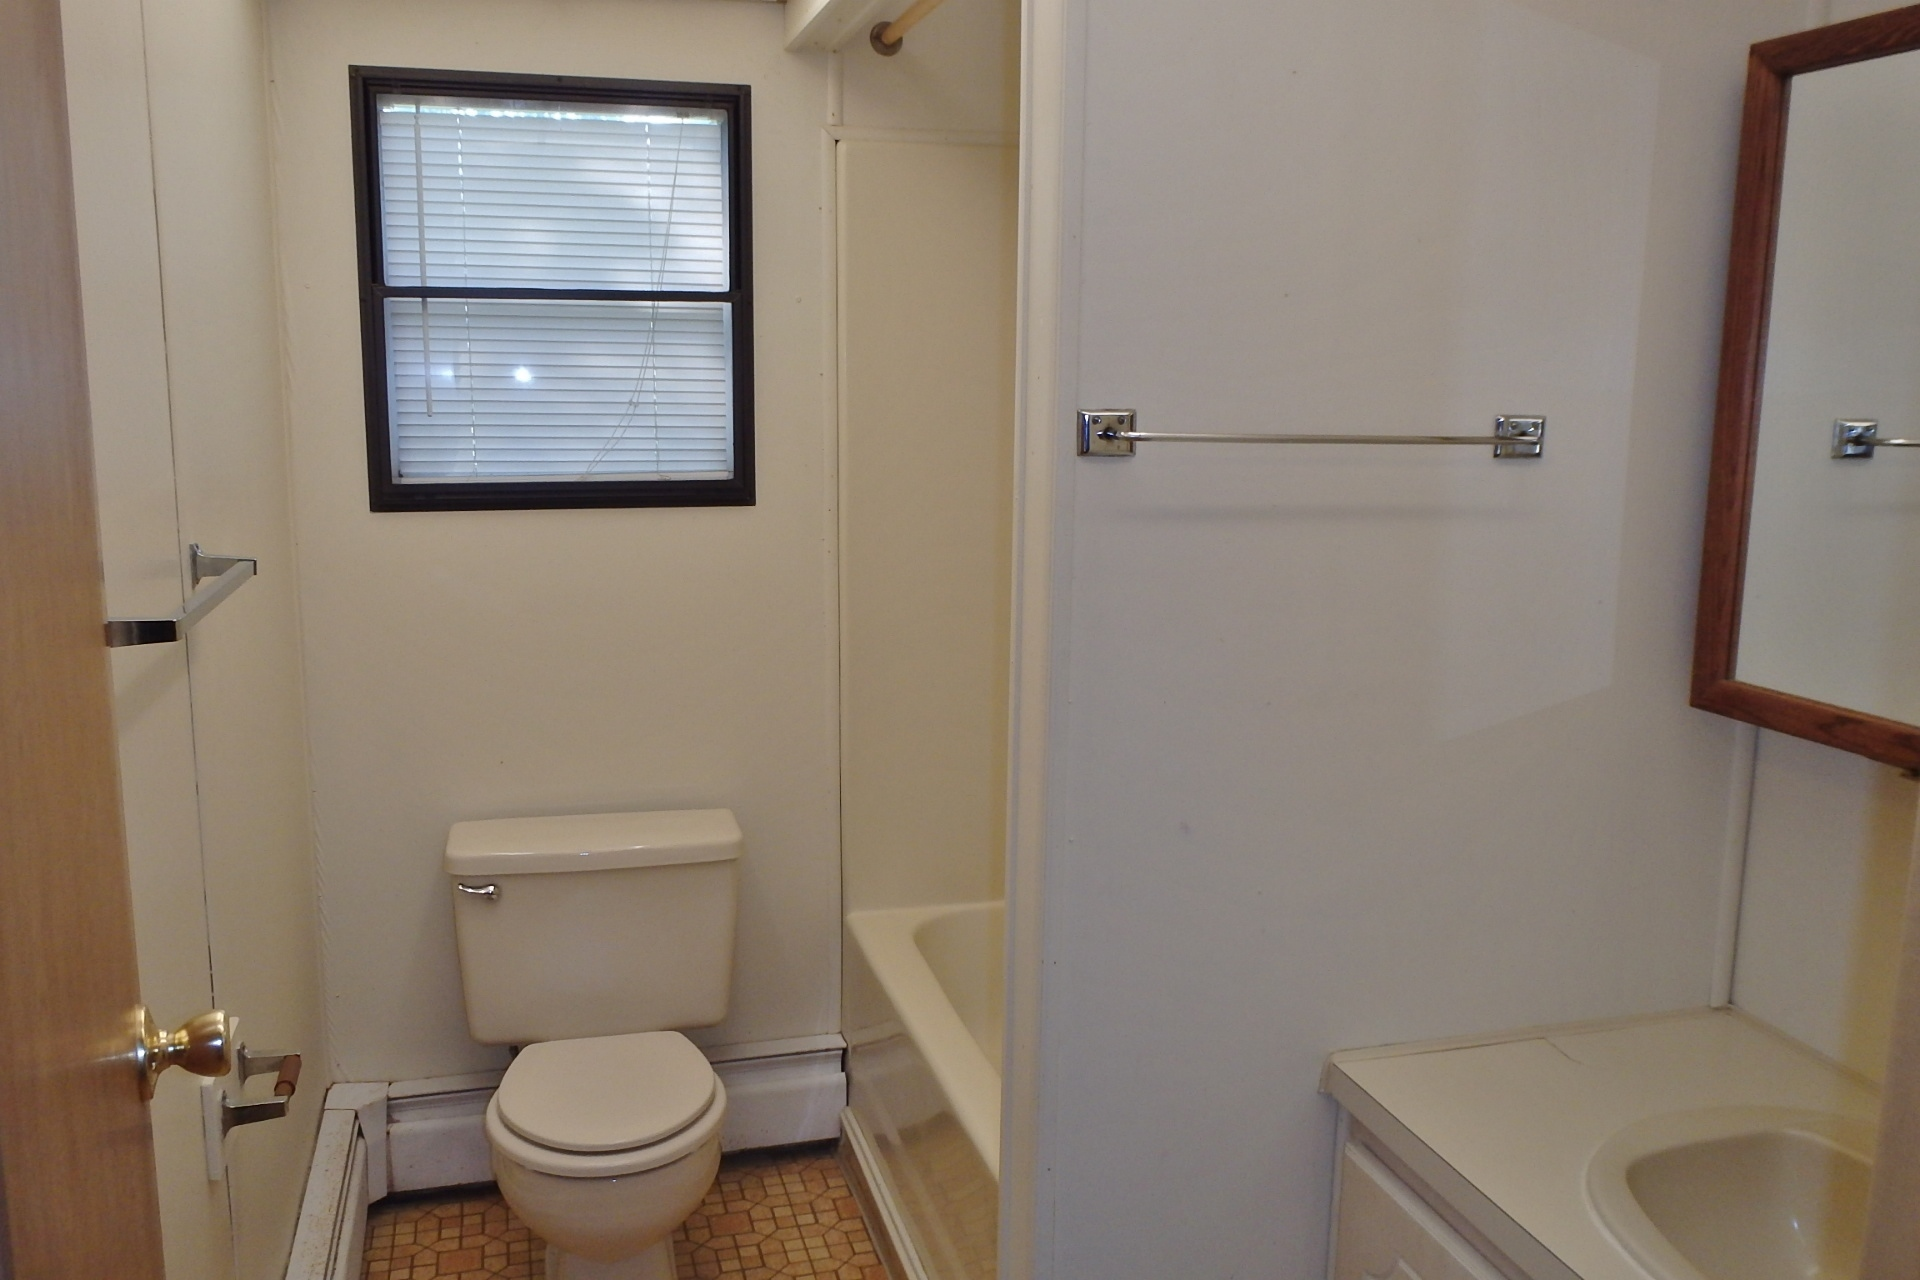 Bathroom photo of the 2 bedroom house for rent at 3119 Carnegie Drive in State College, PA.